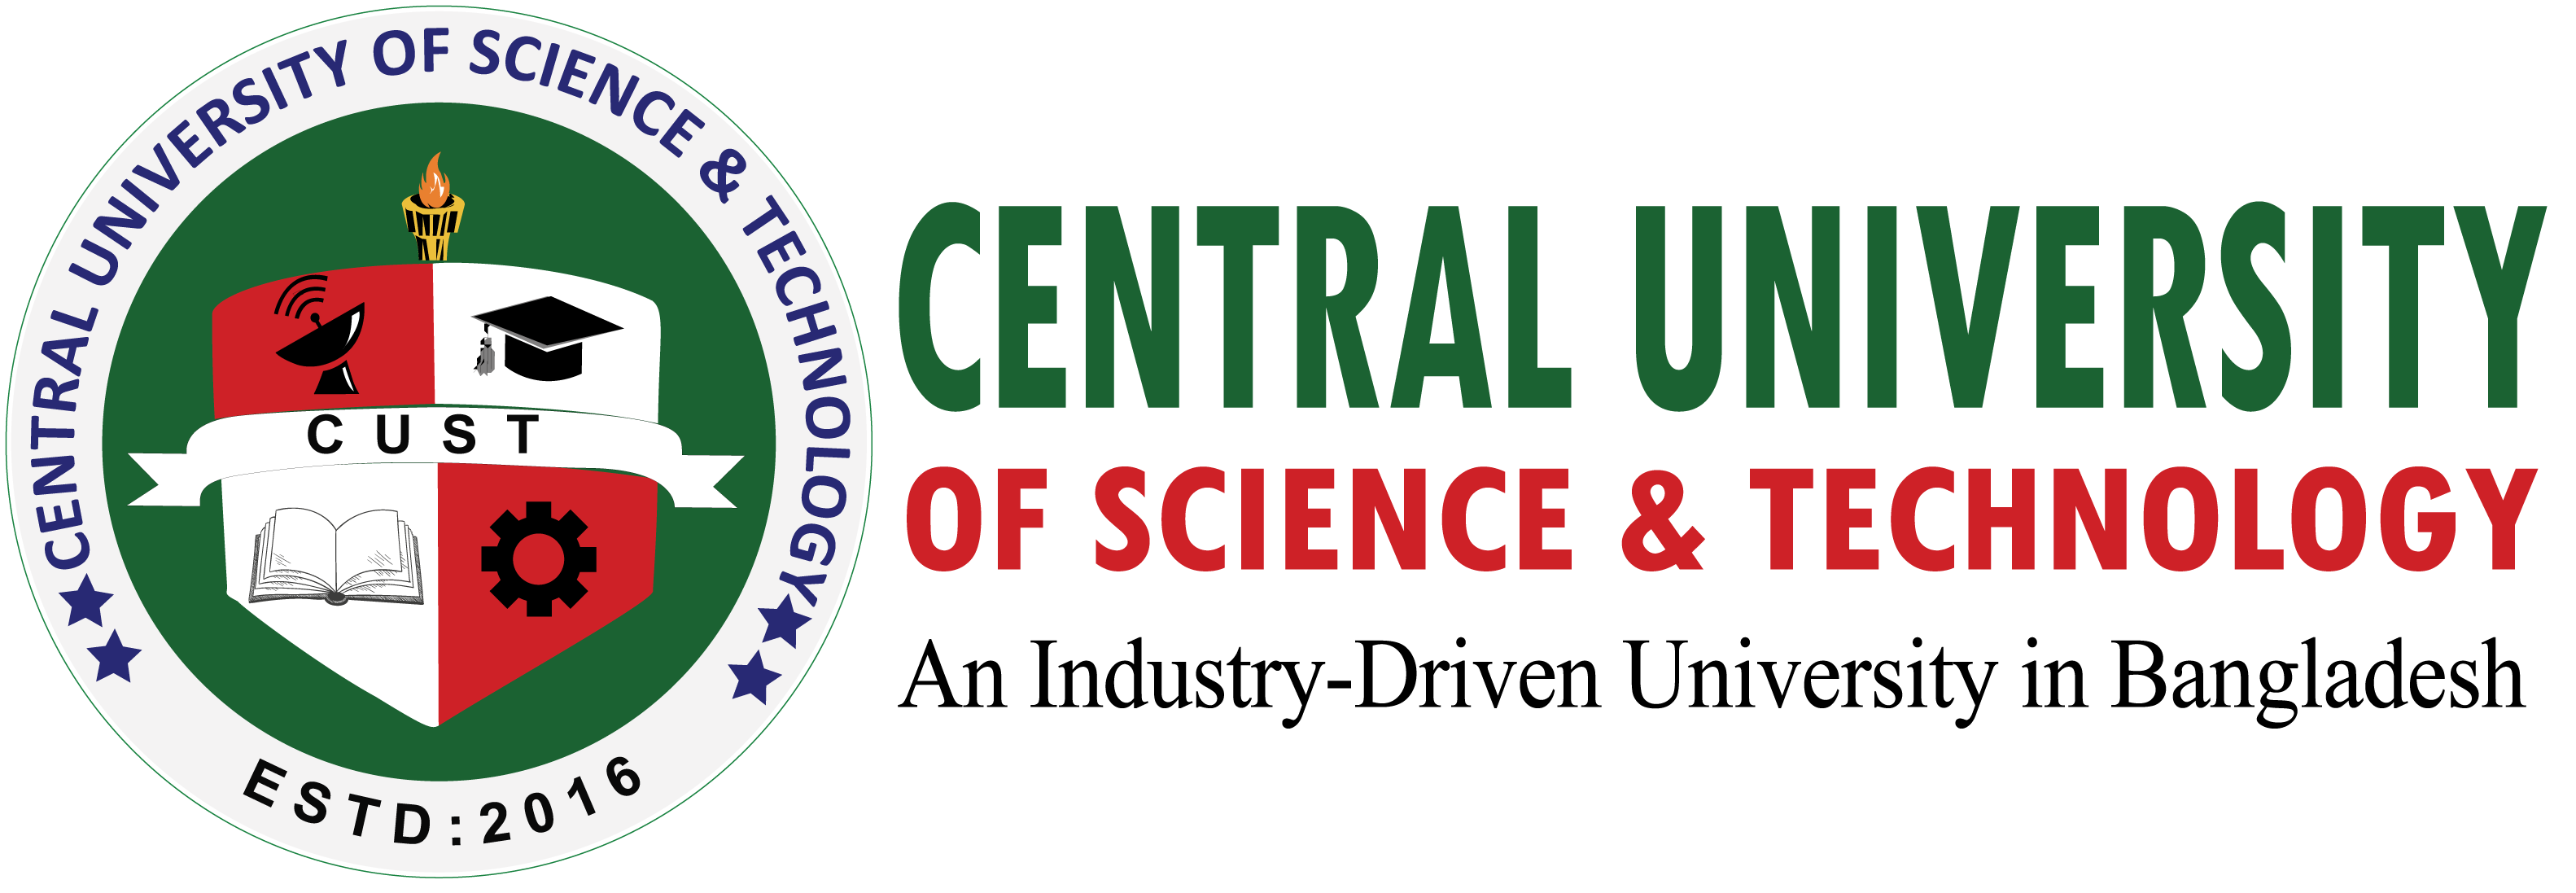 International Students - Central University of Science and Technology